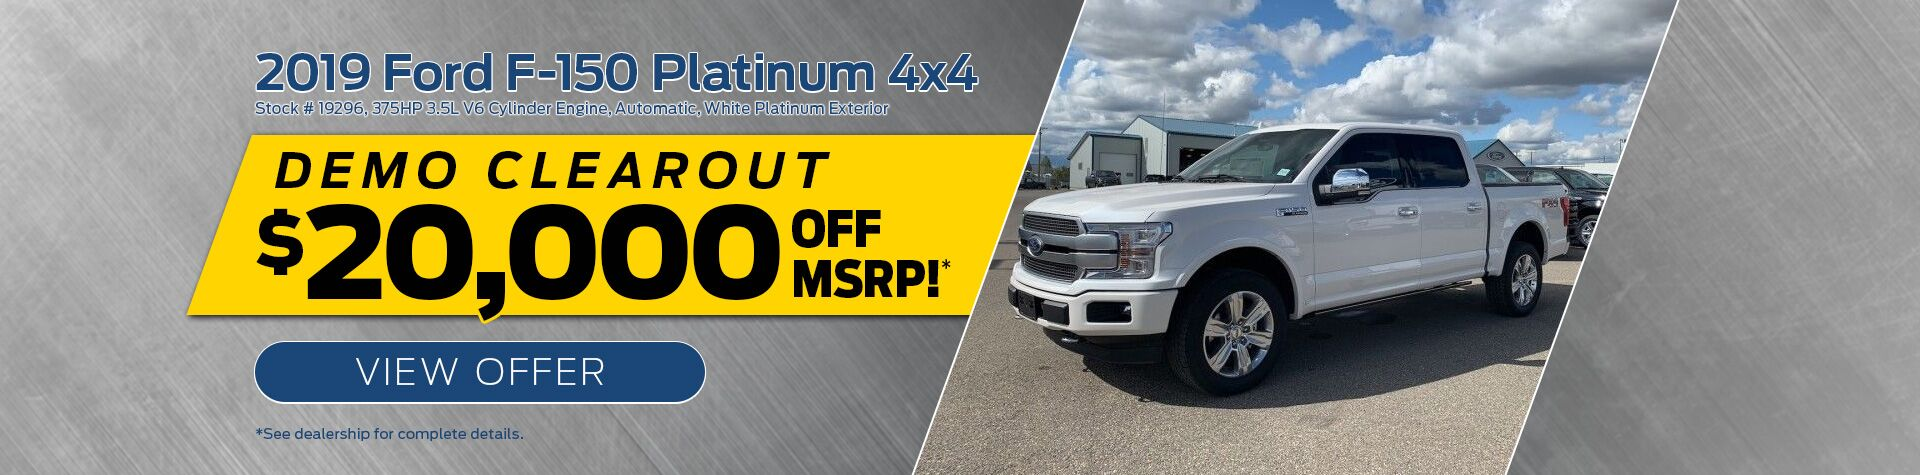 2019 Ford F-150 Platinum 4x4 Demo Clearout